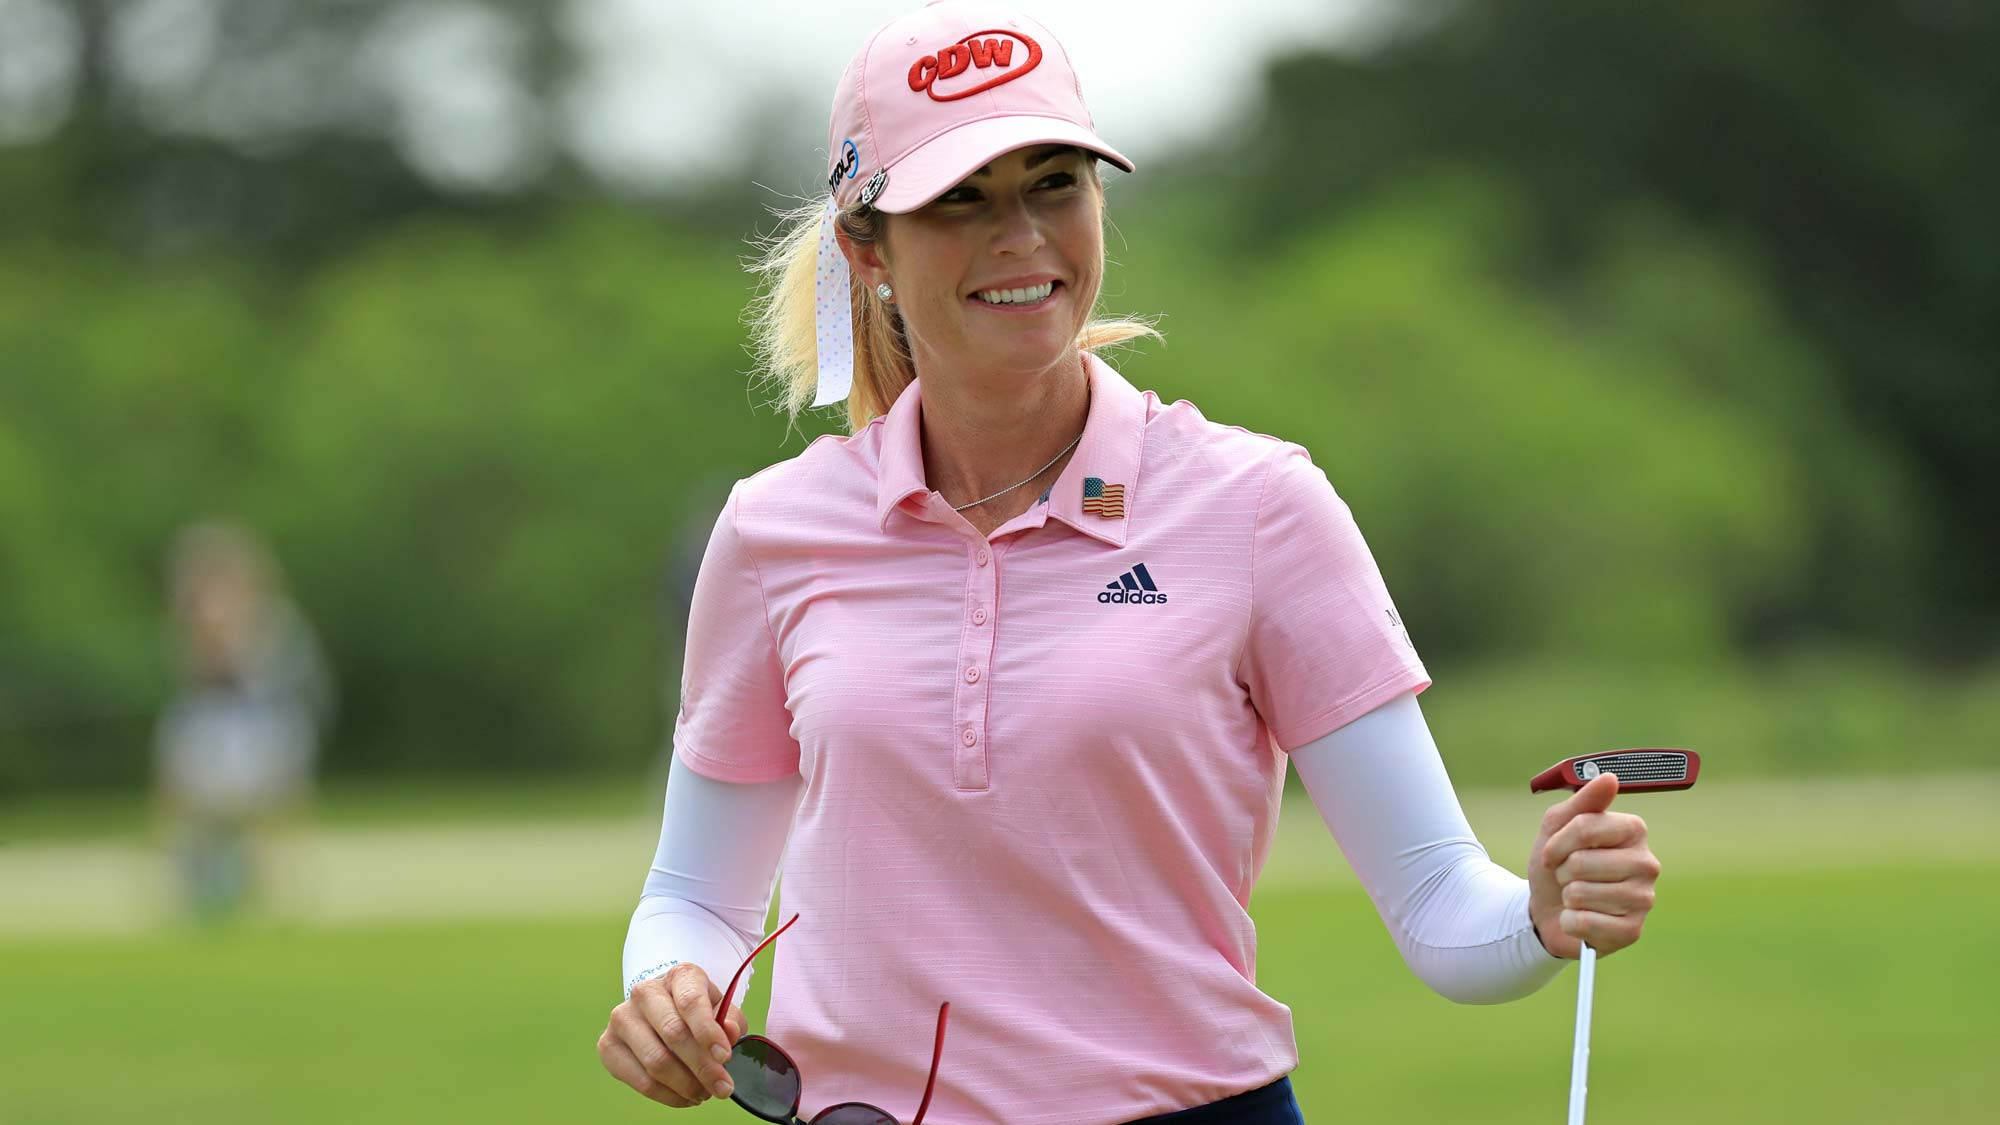 Paula Creamer smiles after putting out on the seventh hole during the first round of the ShopRite LPGA Classic presented by Acer